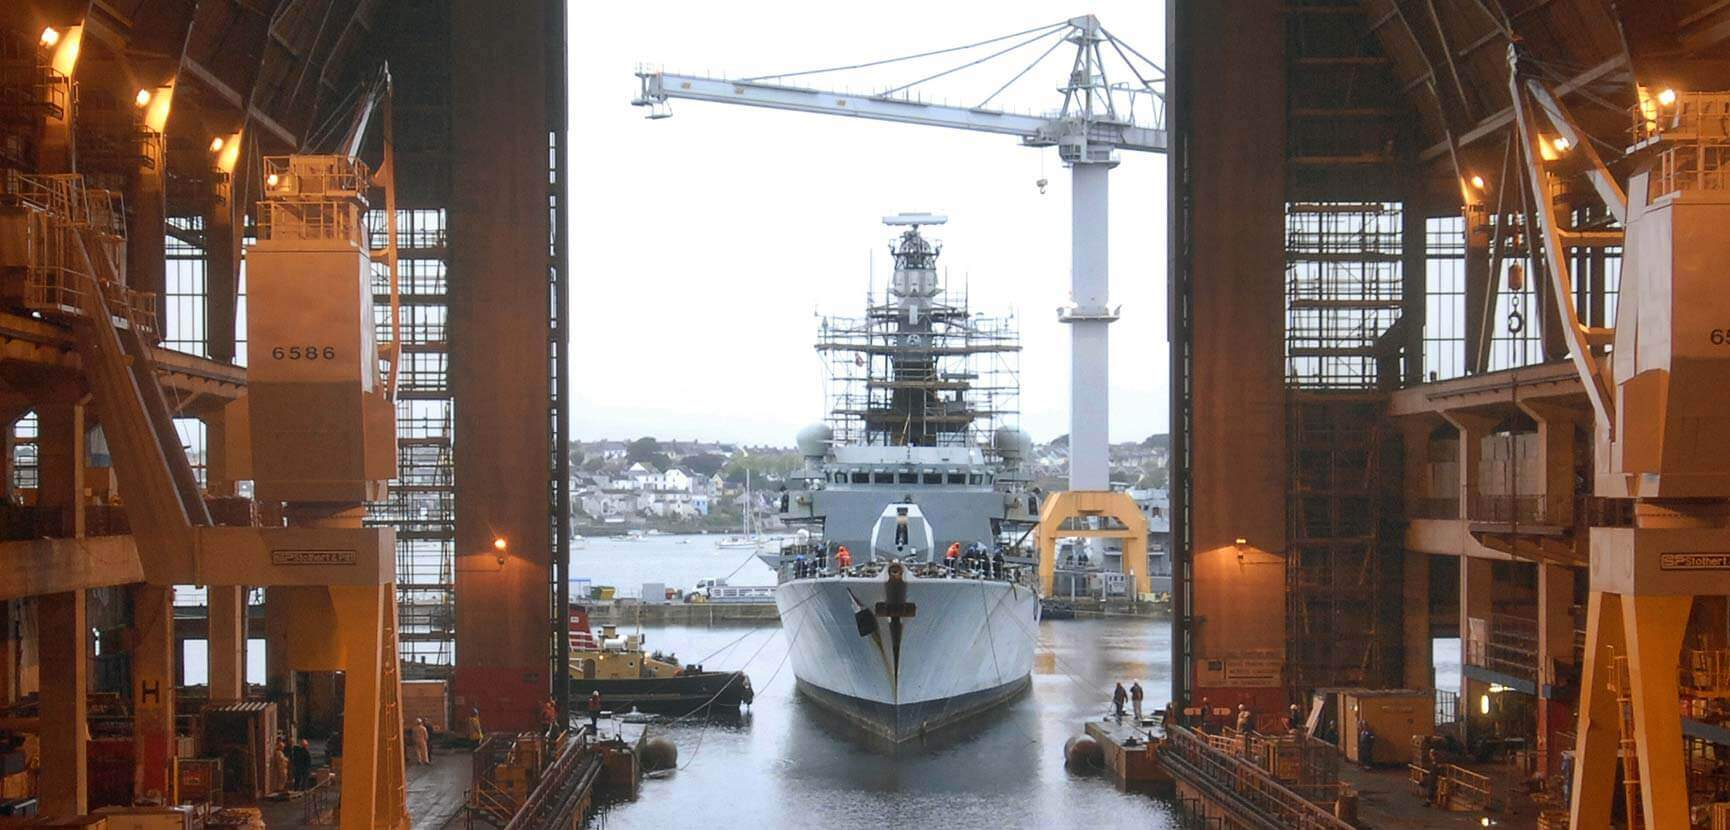 New engines for the Royal Navy's Type 23 Frigates